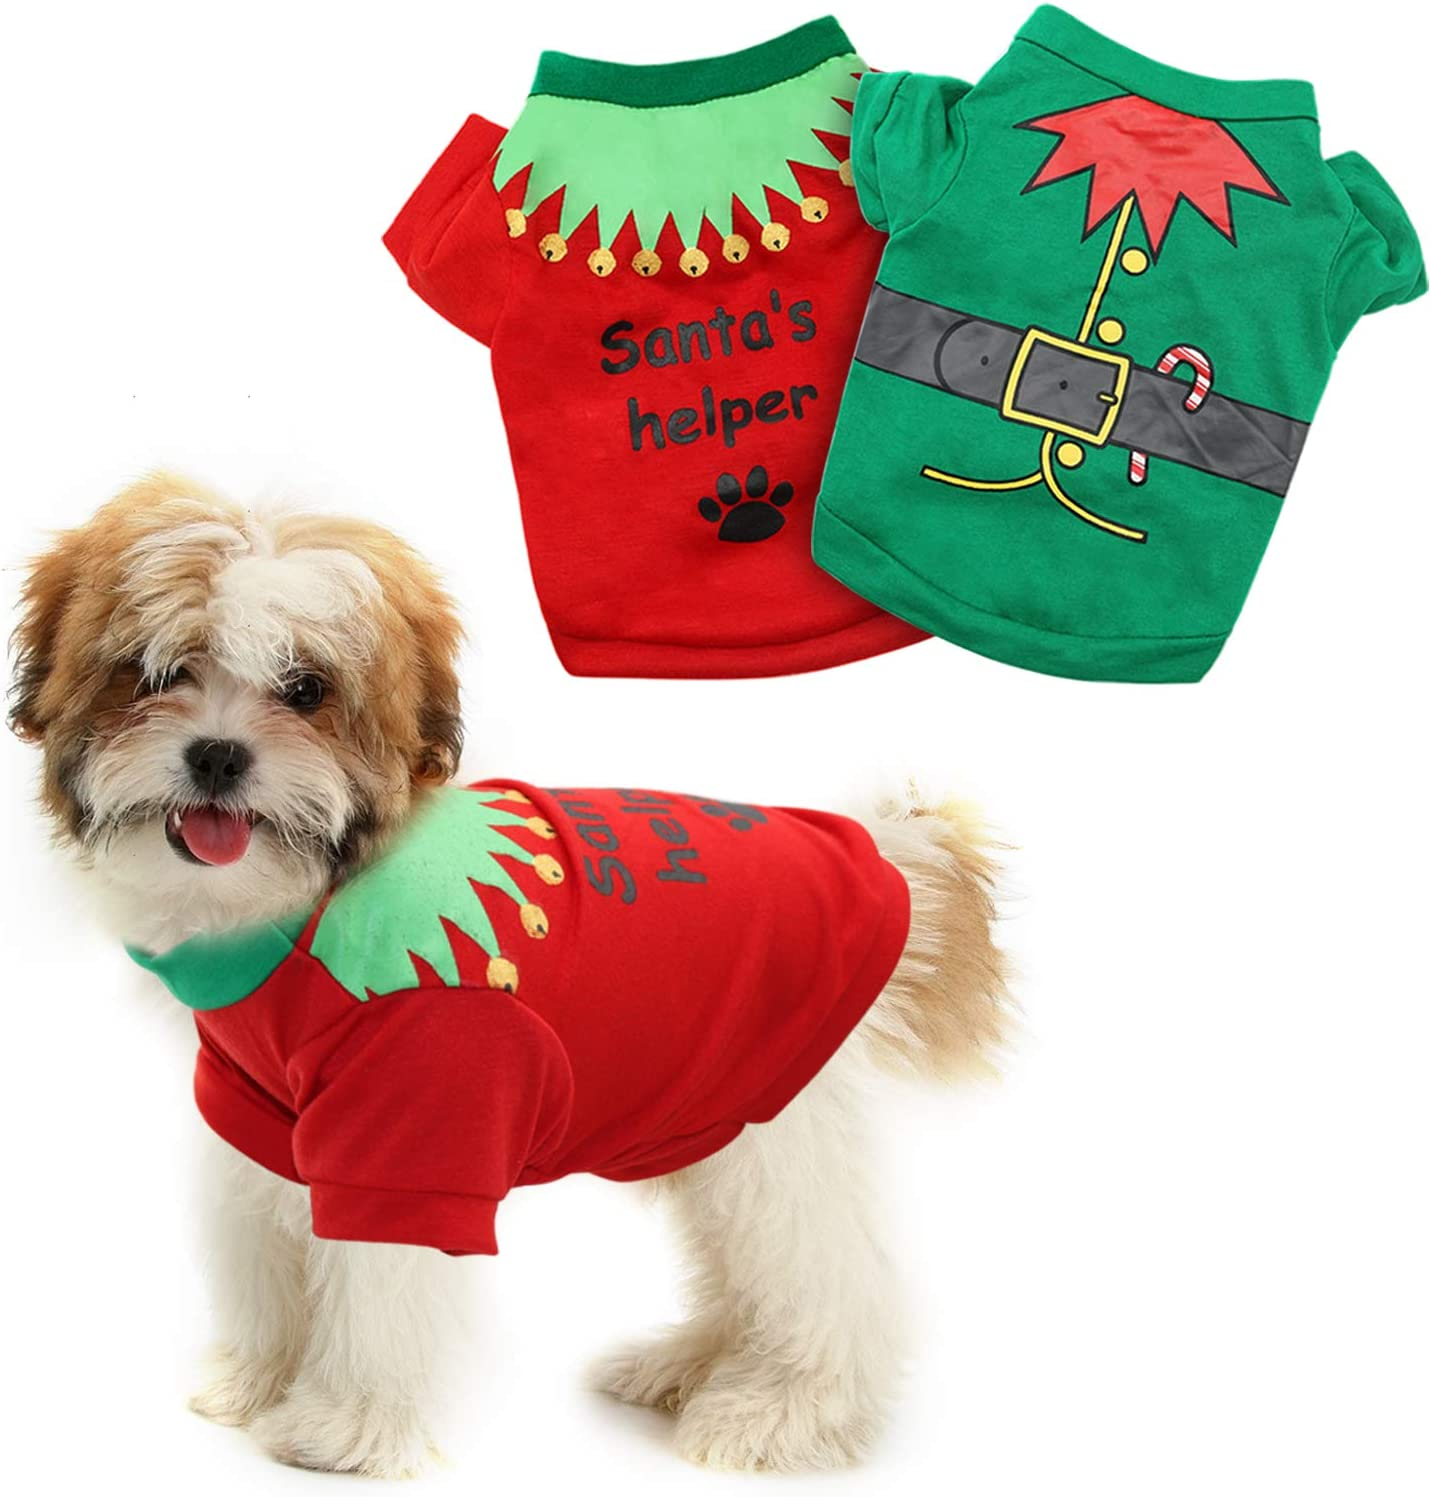 HYLYUN 2 Pack Christmas Dog Shirts Shirt Puppy Pet - T-S Printed New life Our shop OFFers the best service